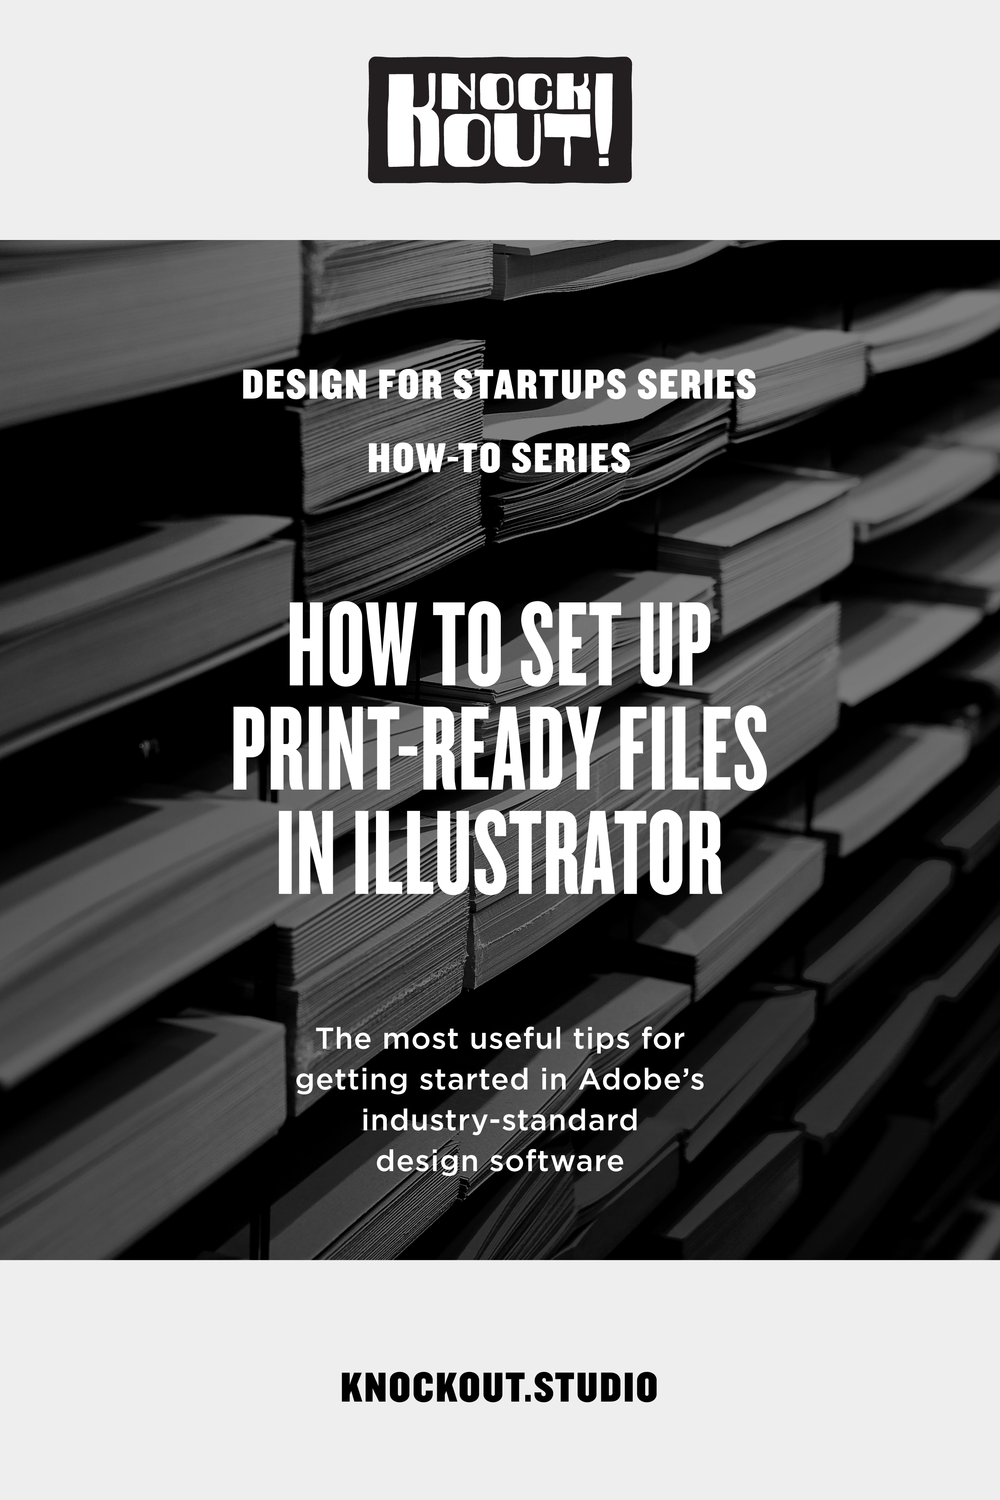 The most useful tips for getting started in Adobe's industry-standarddesign software, Illustrator. From Knockout! Studio, www.knockout.studio